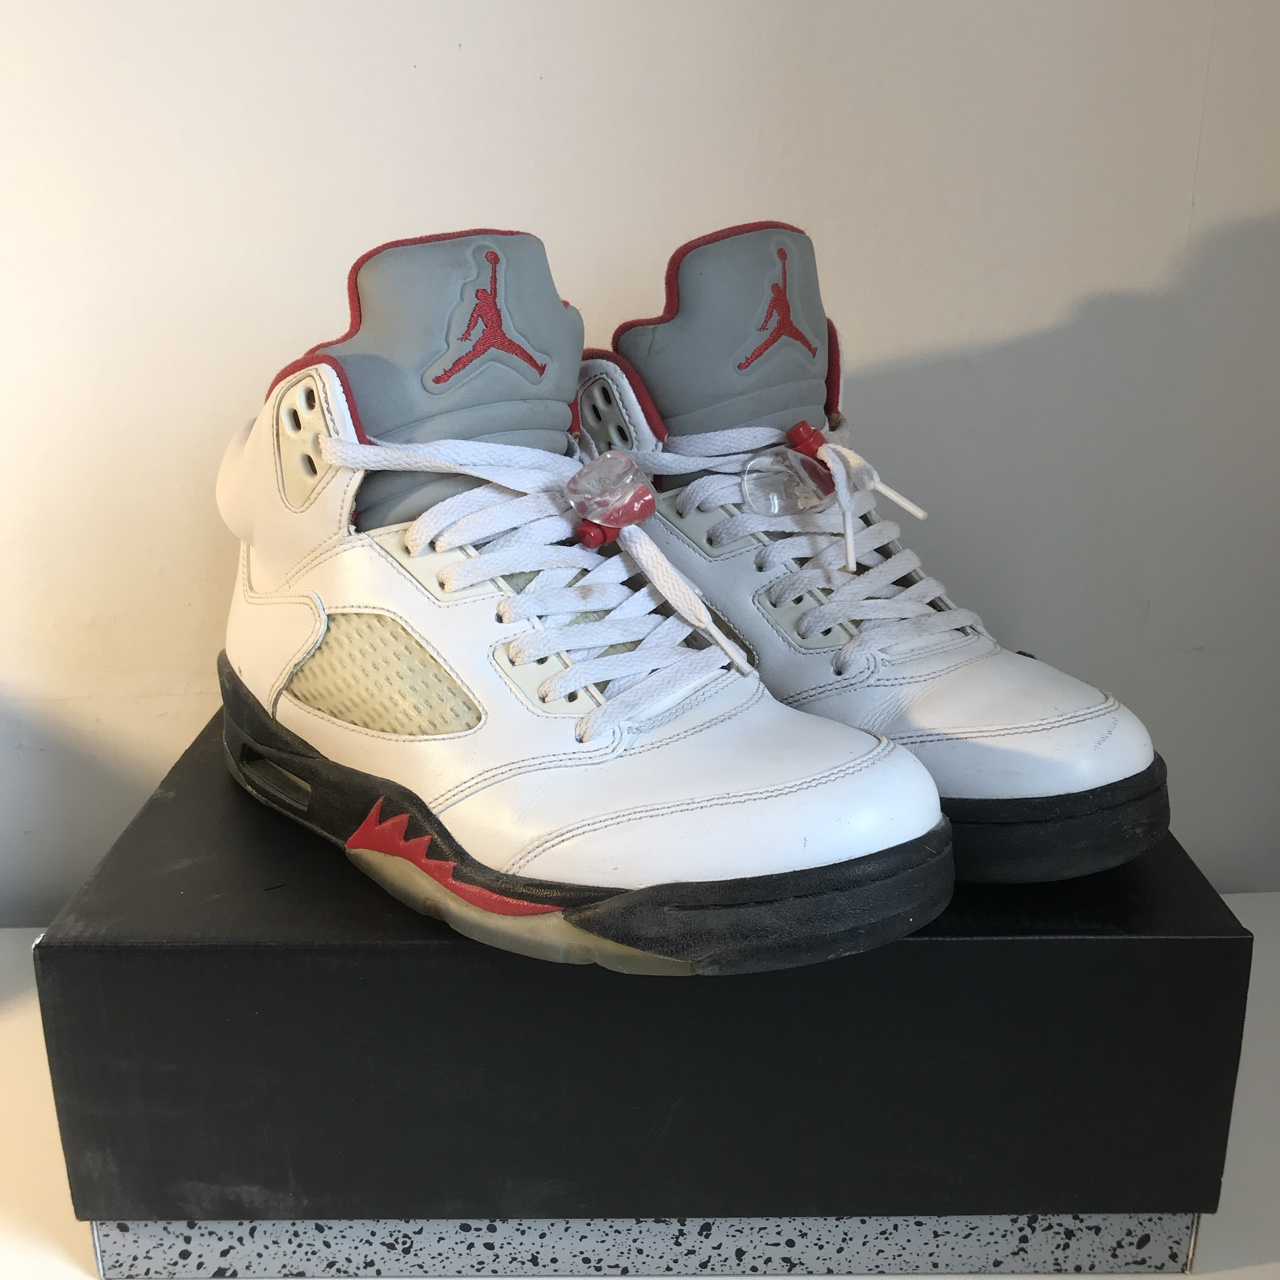 separation shoes 77871 9f4e9 2013 Nike Air Jordan 5 Retro White Fire Red with 3M... - Depop